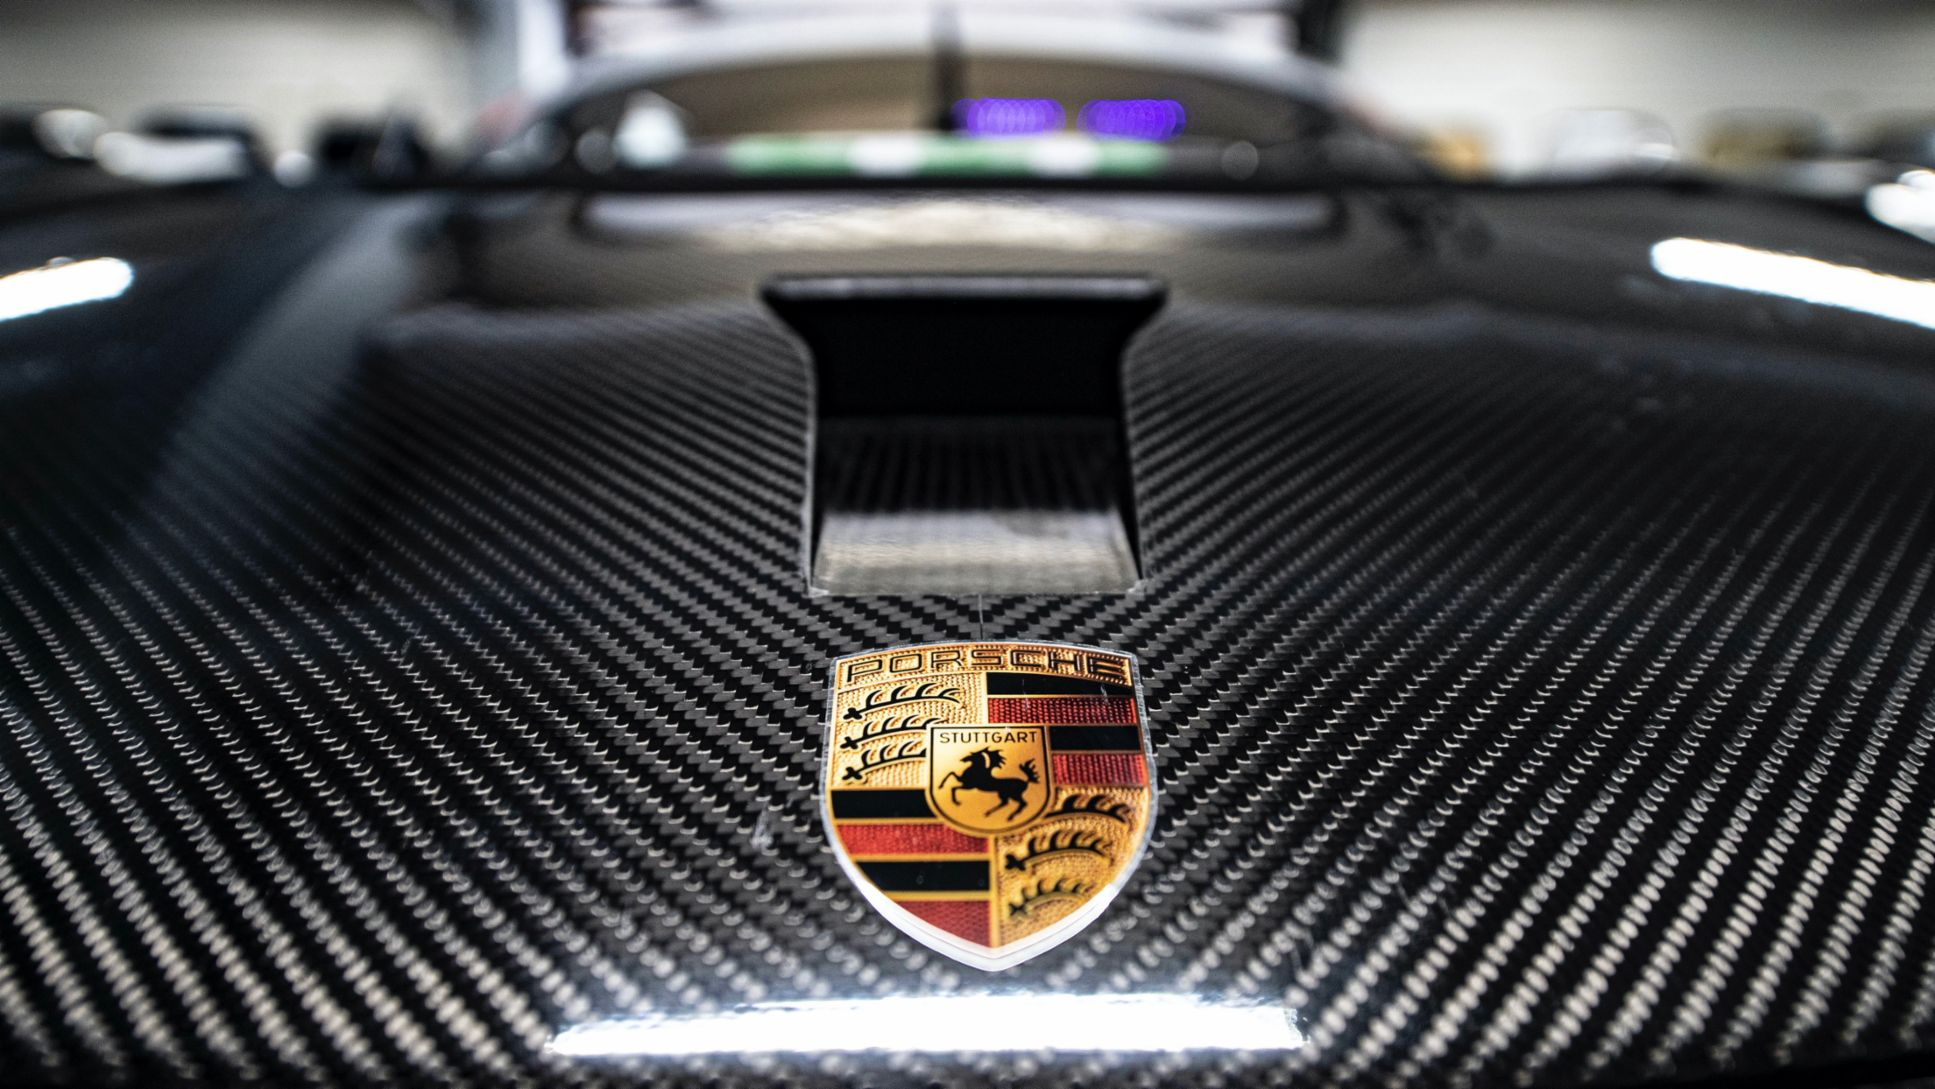 Porsche and Team Penske to collaborate in motorsports - Image 4